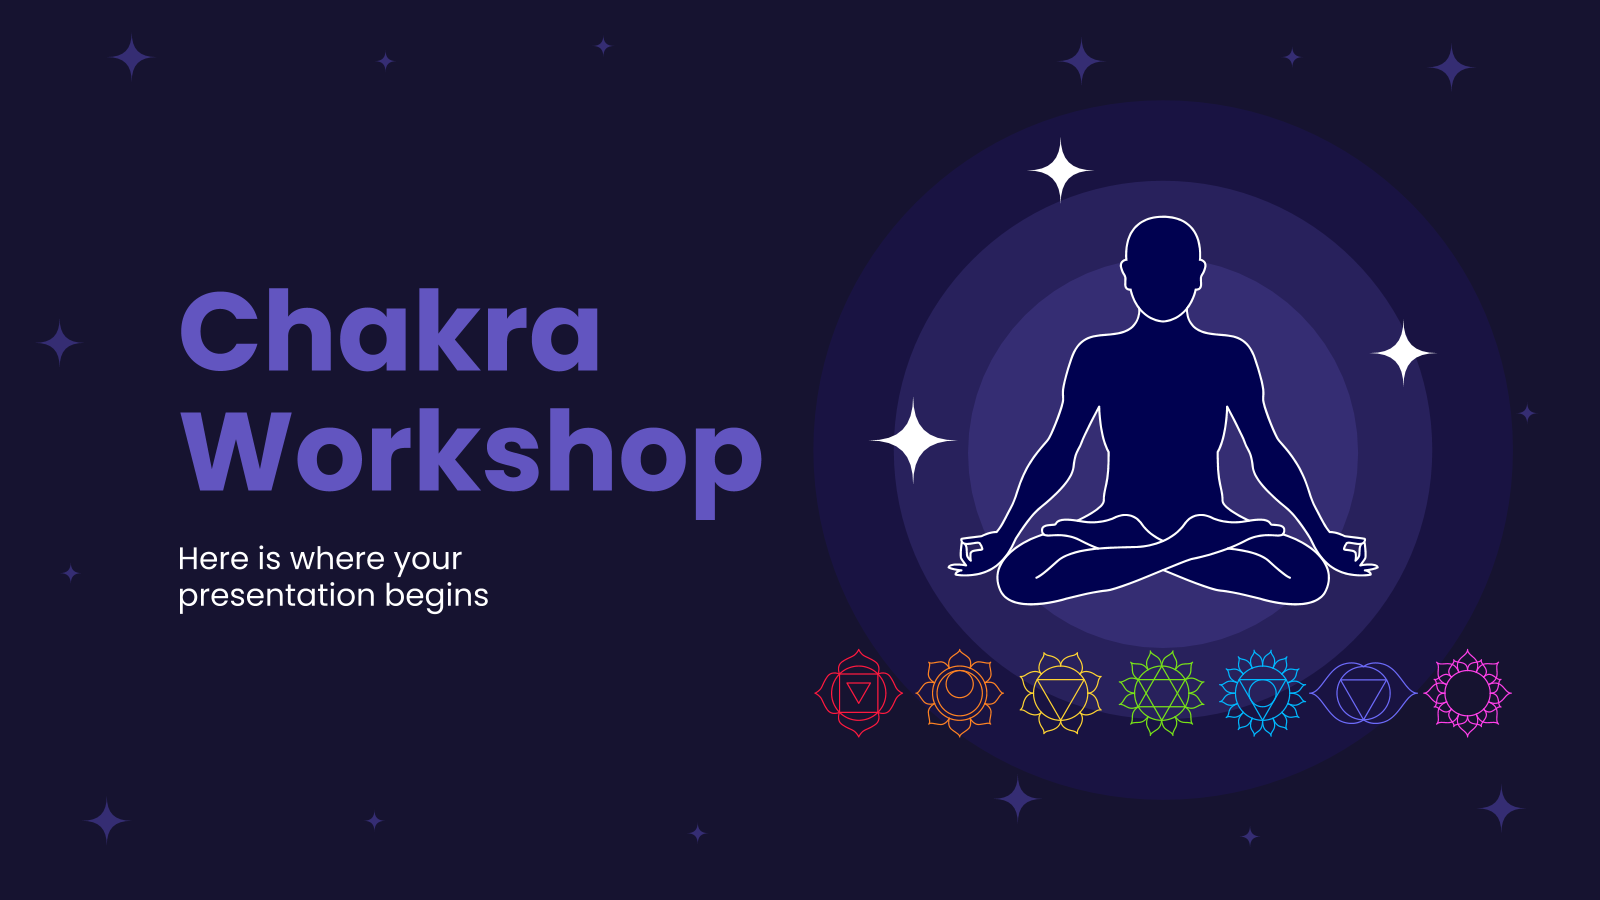 Chakra Workshop presentation template